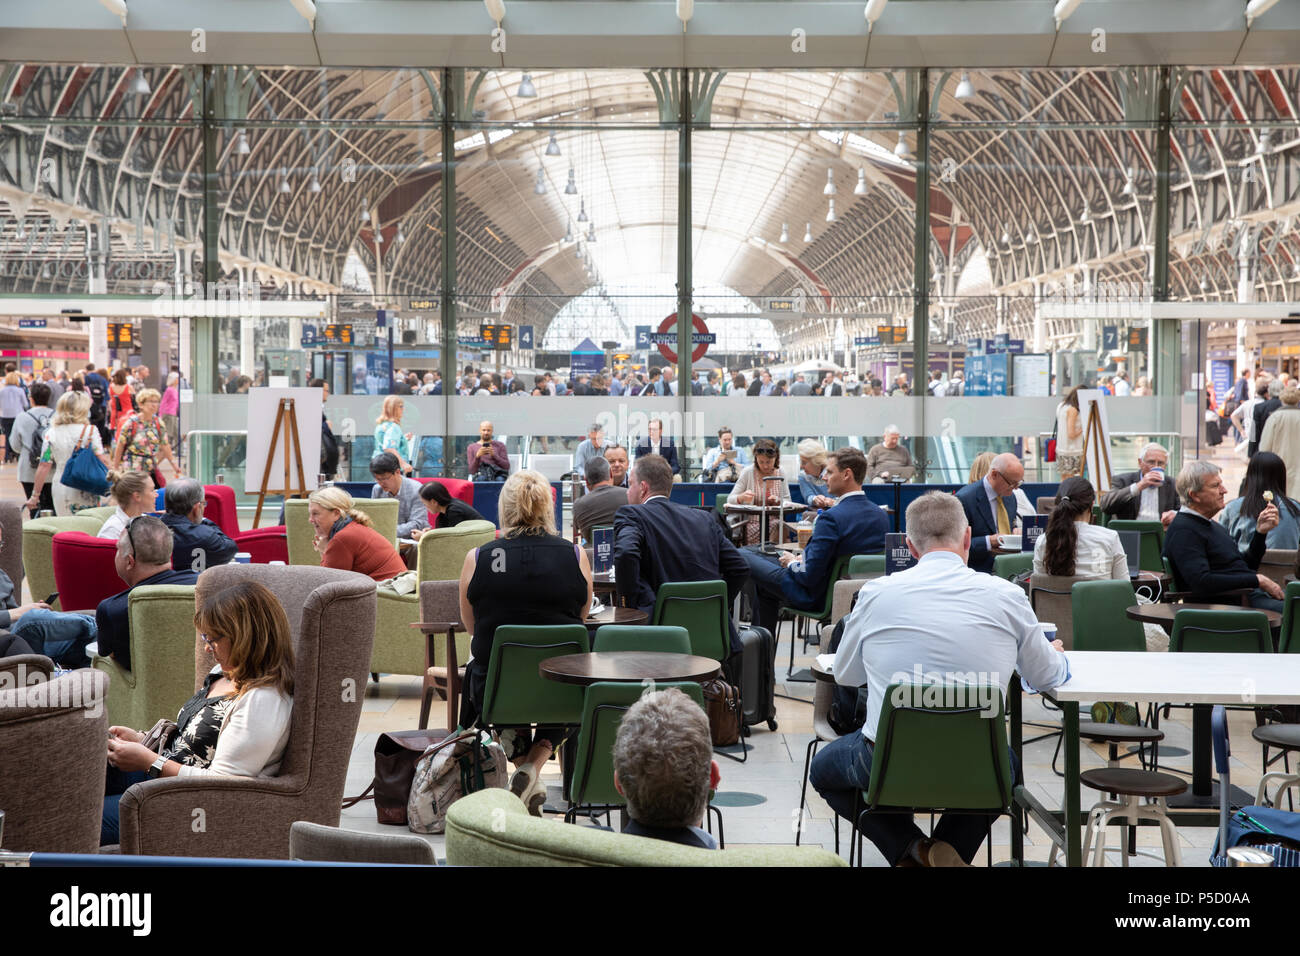 Caffe Ritazza en la estación de Paddington, en Londres. Imagen De Stock